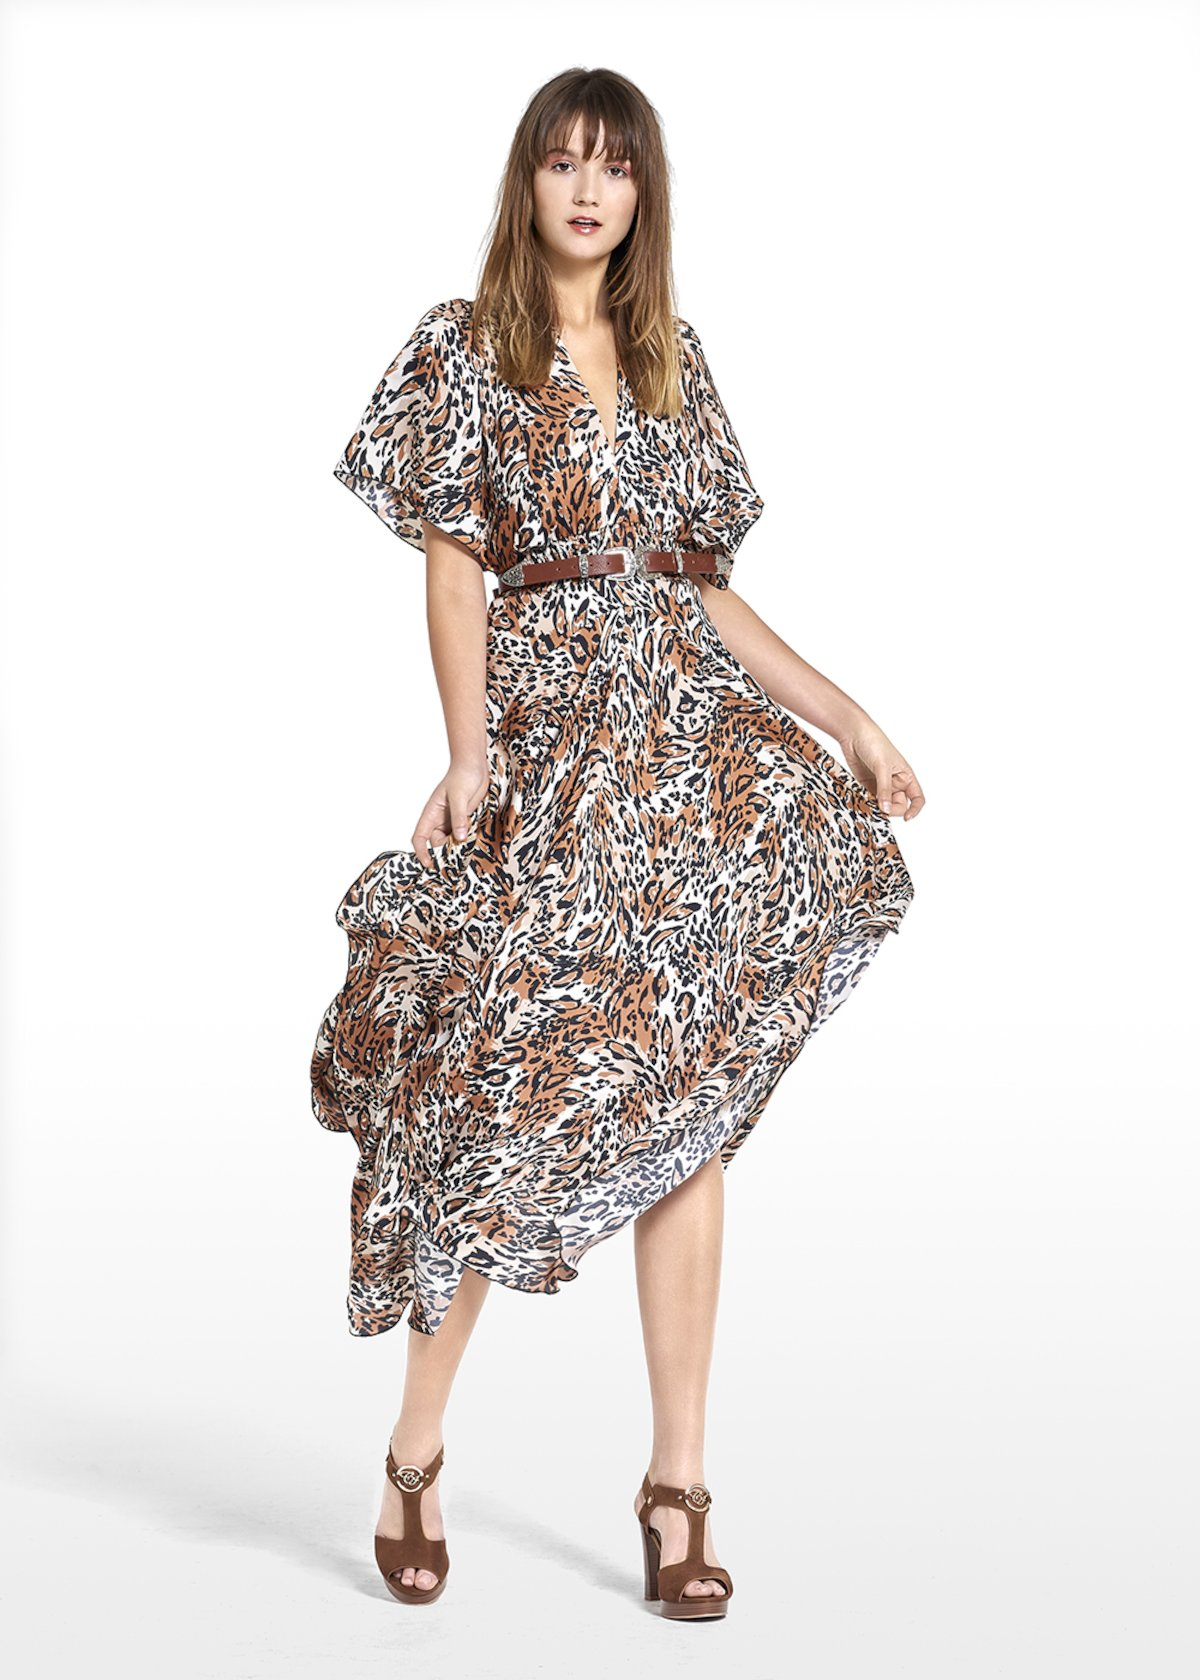 Long dress Alexis with spotted pattern - Beige Animalier - Woman - Category image